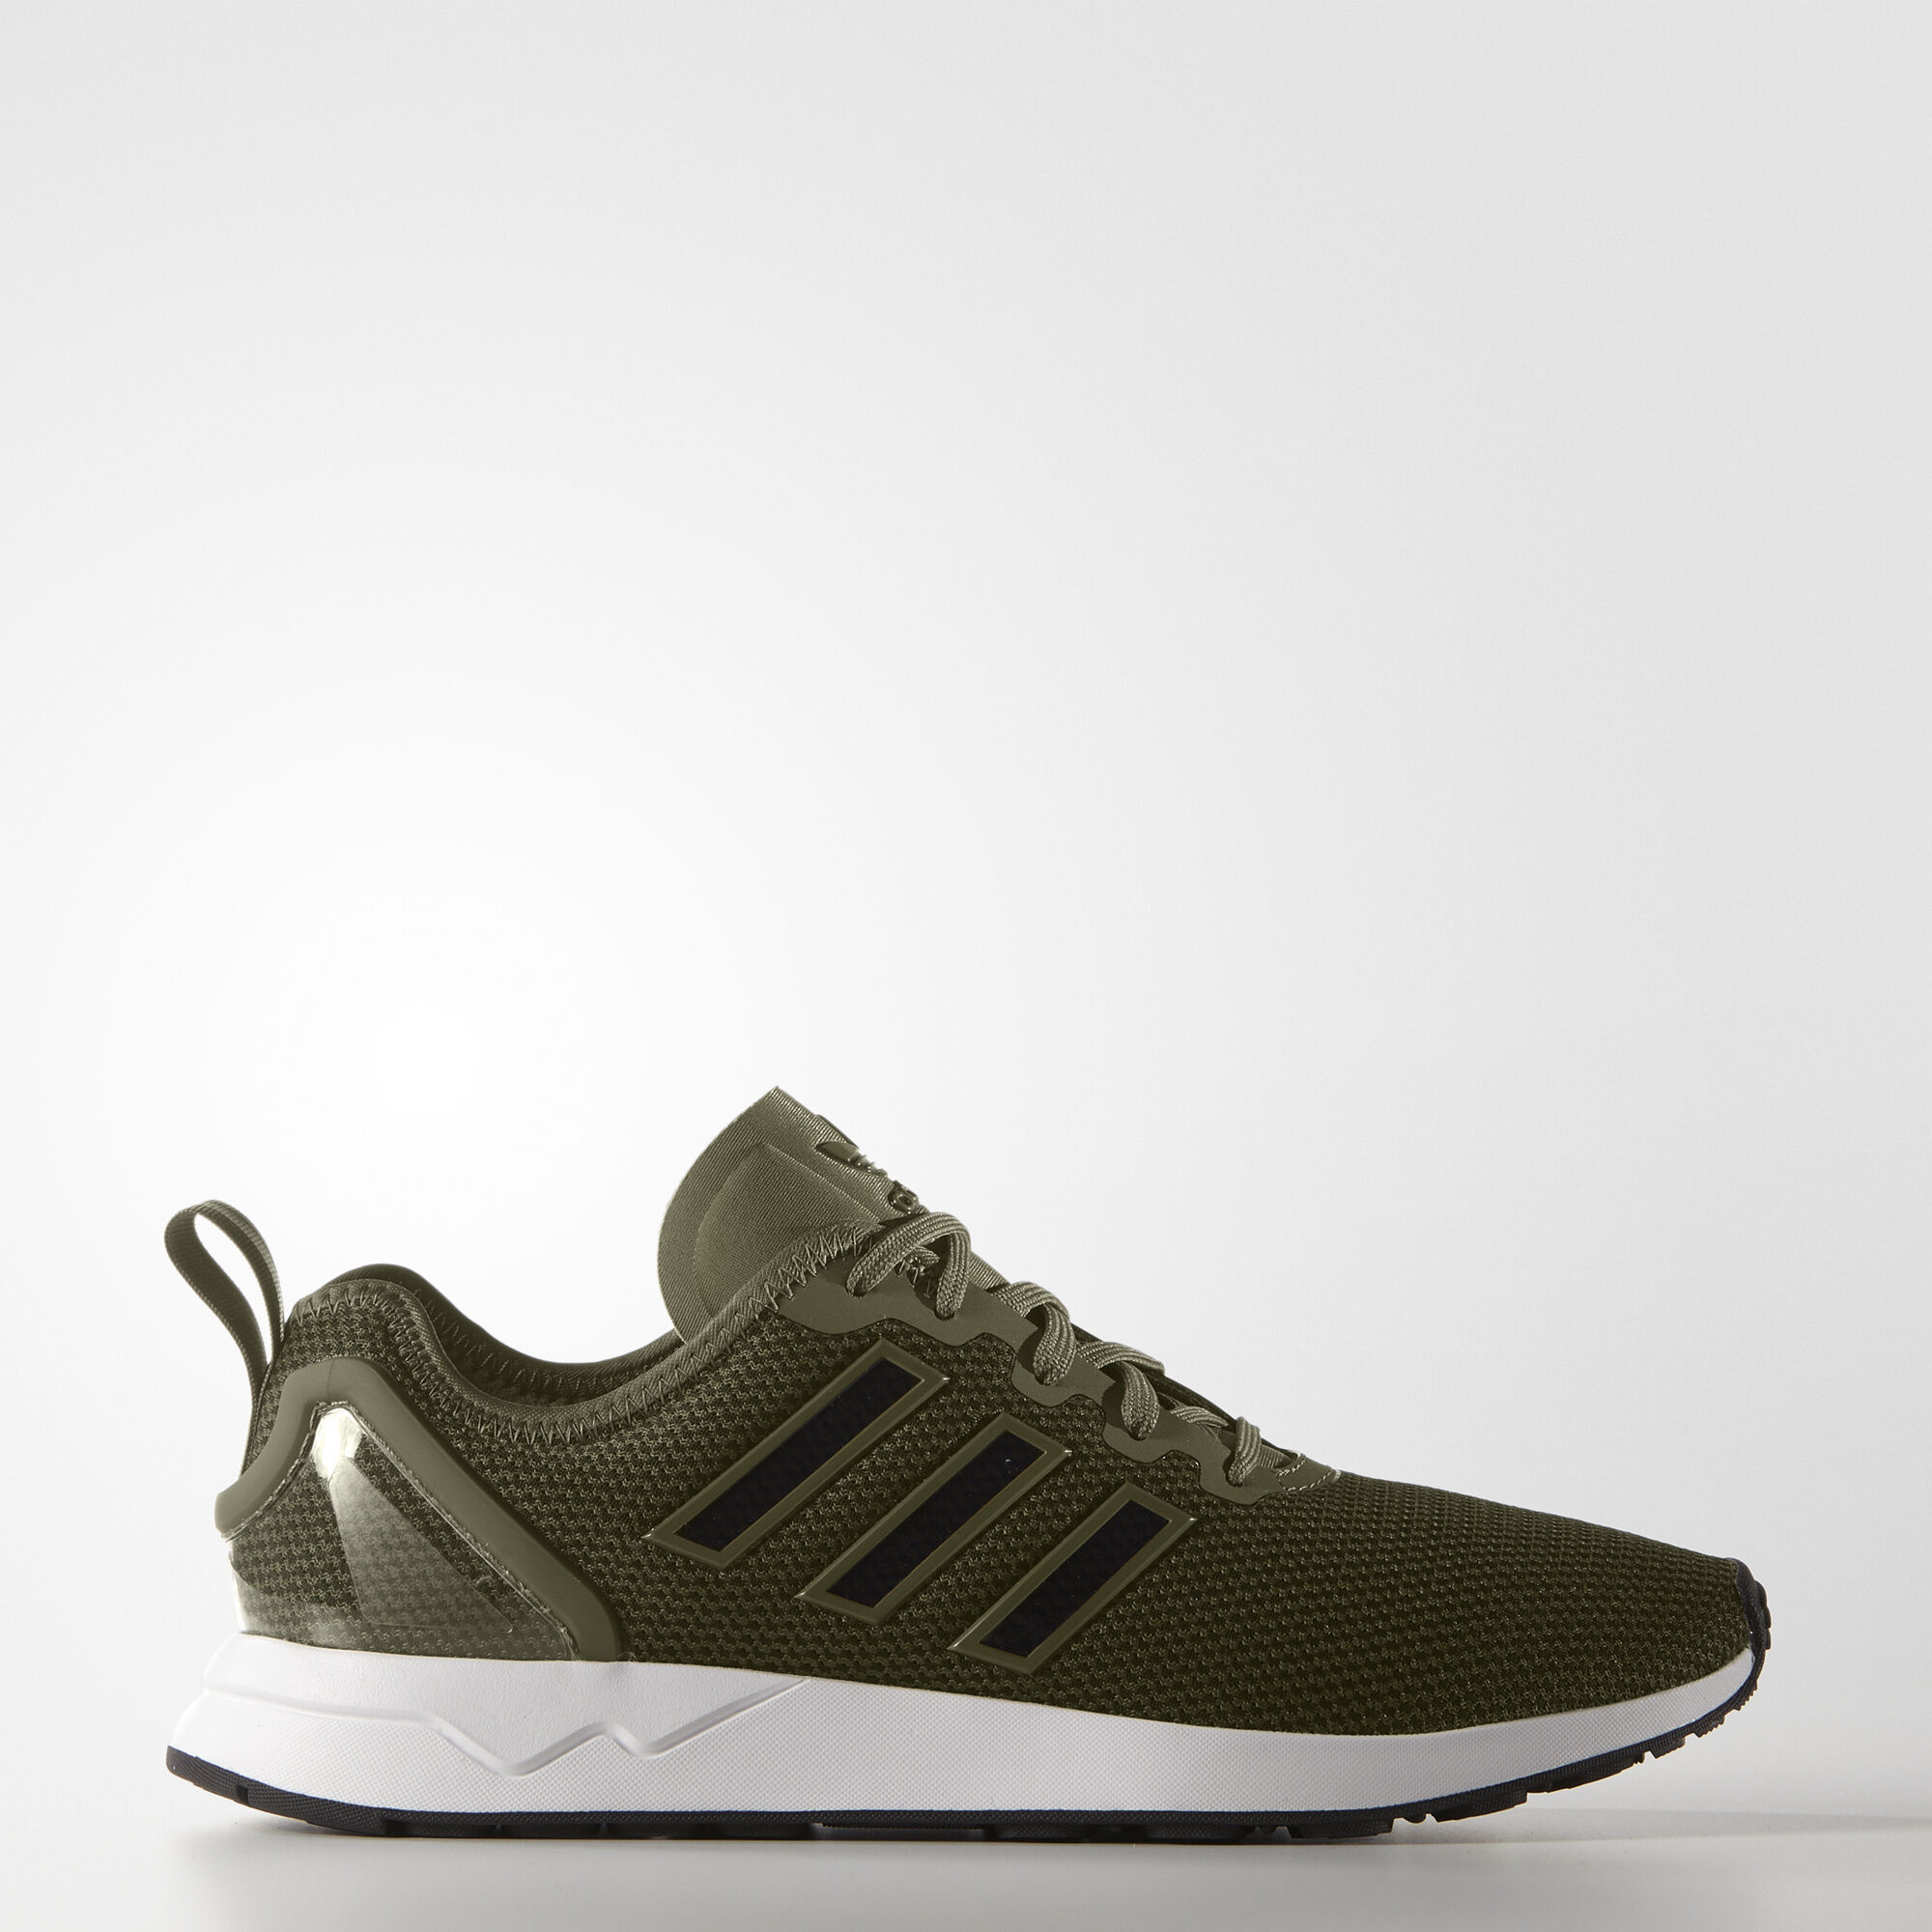 0f9670e9a75 ... coupon adidas zx flux adv olive 37e2e a5095 good staff pick adidas  olive green zx flux adv trainers ...